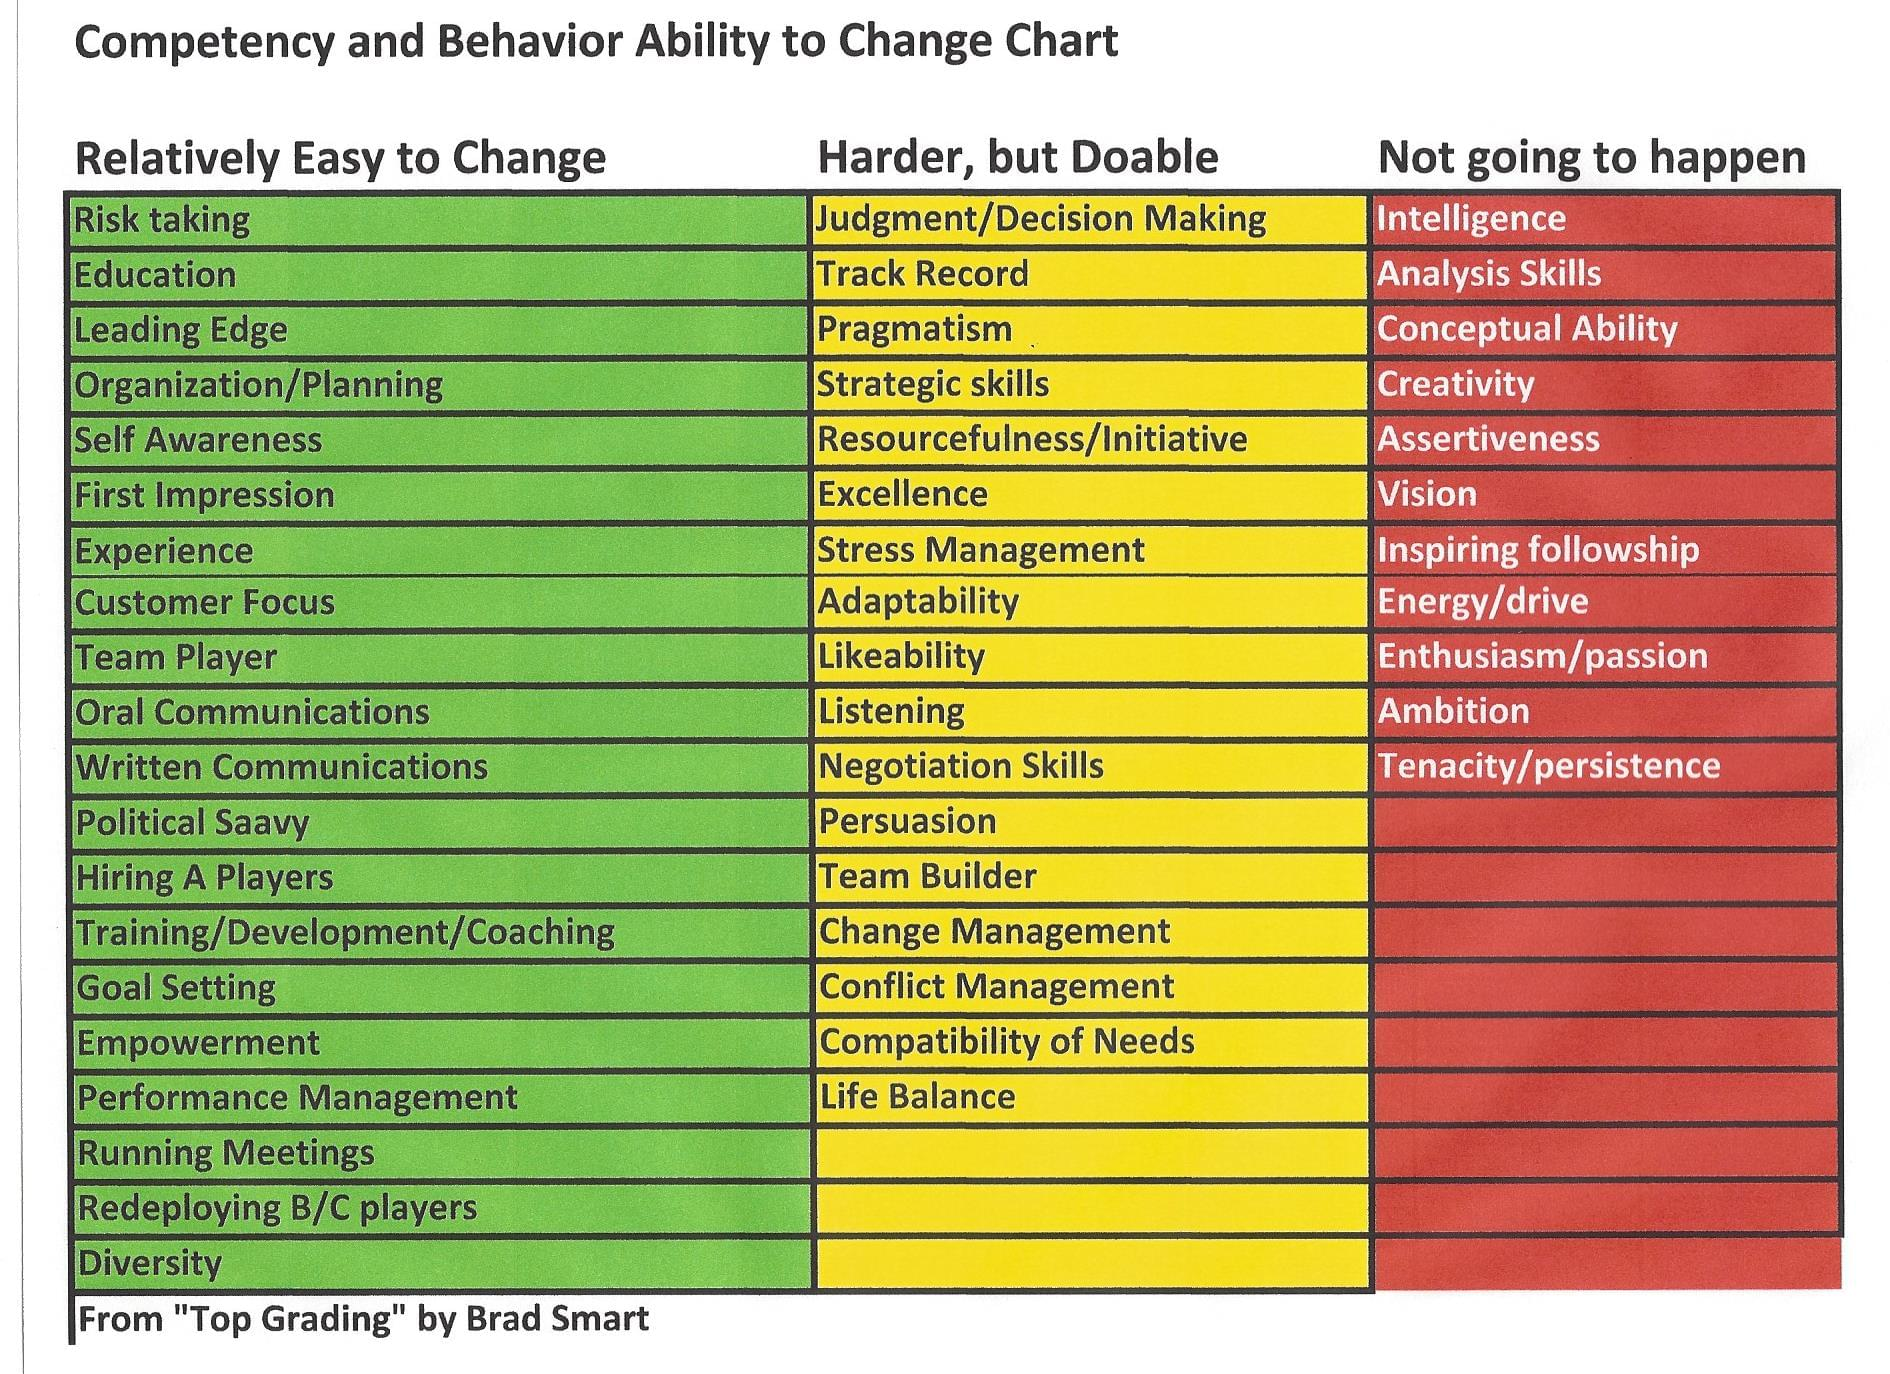 Competency and behavior ability to change chart